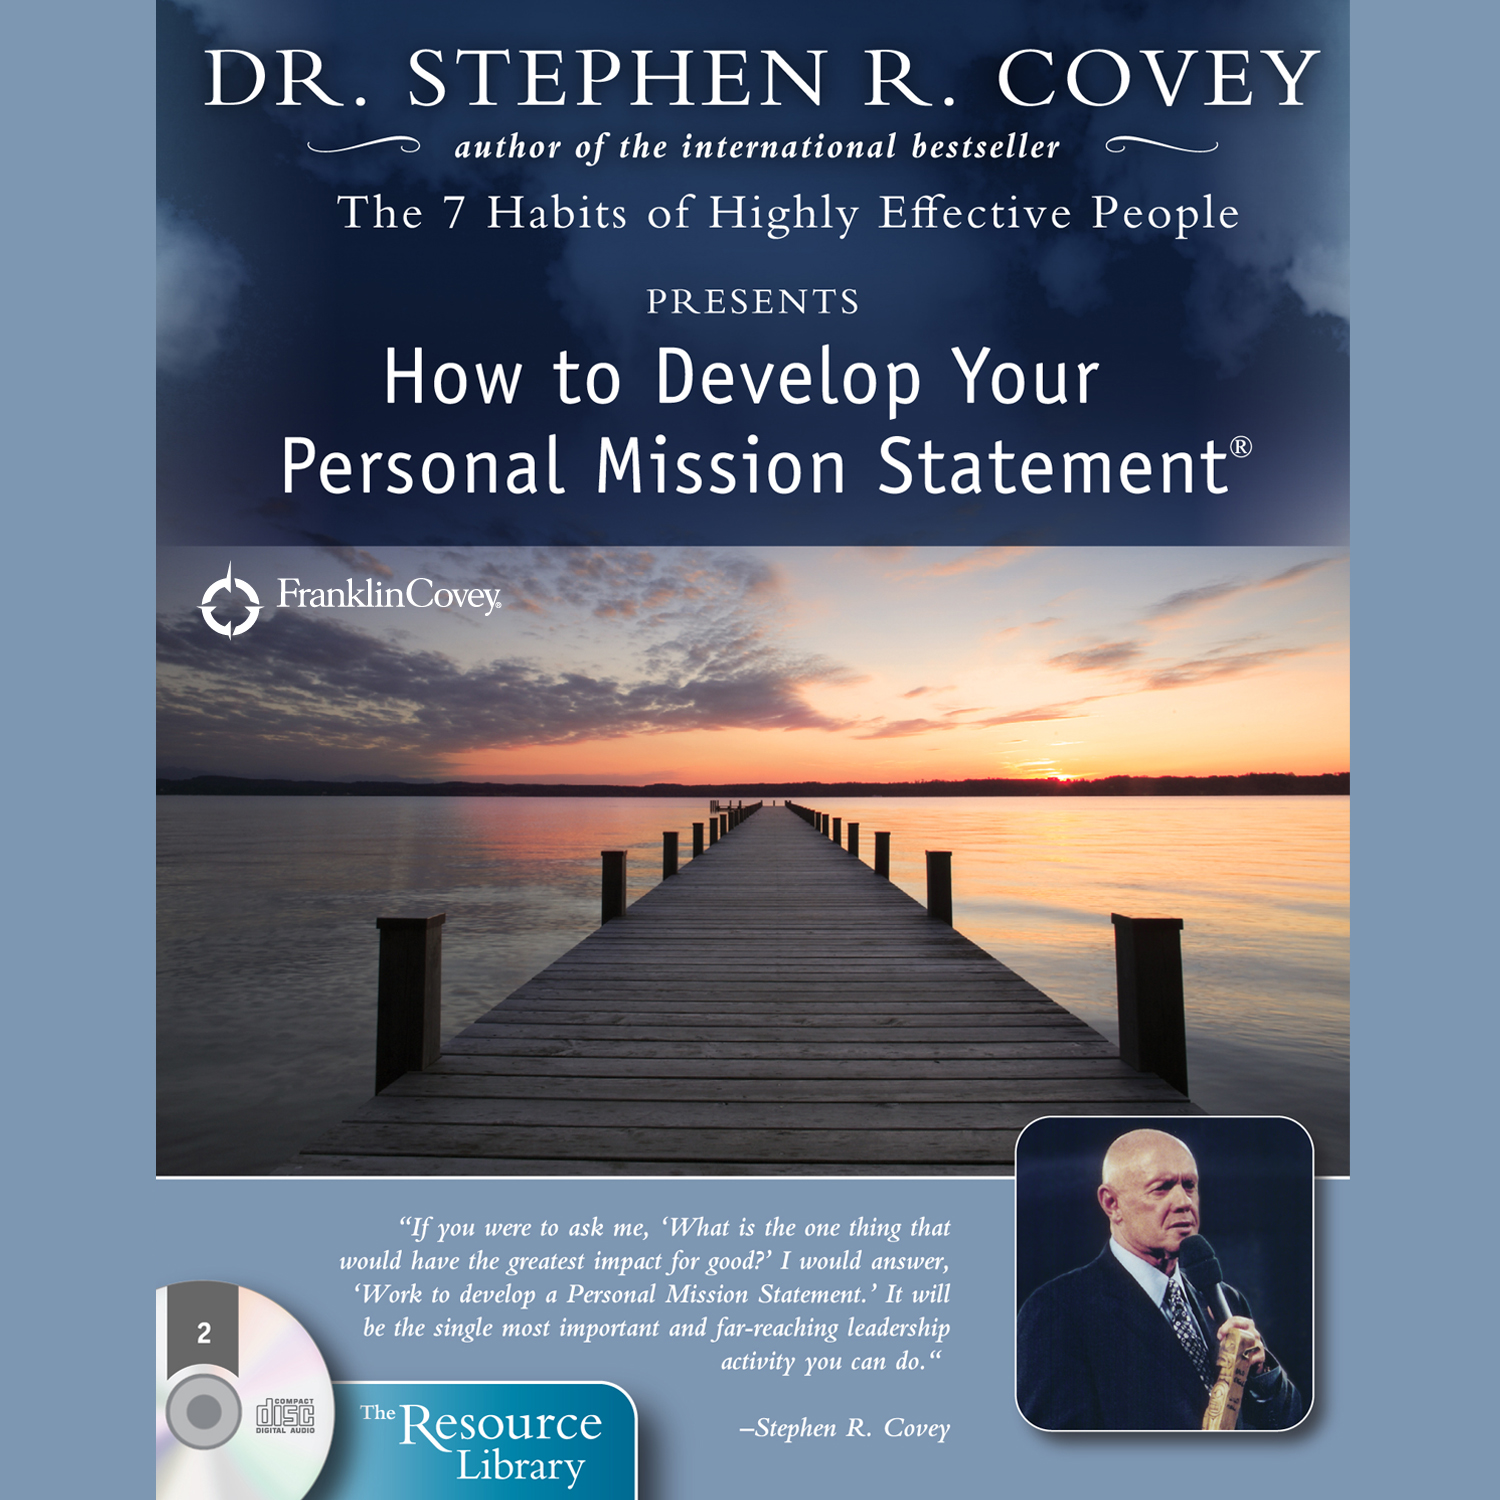 how to develop your personal mission statement audiobook by cvr9781442351141 9781442351141 hr how to develop your personal mission statement